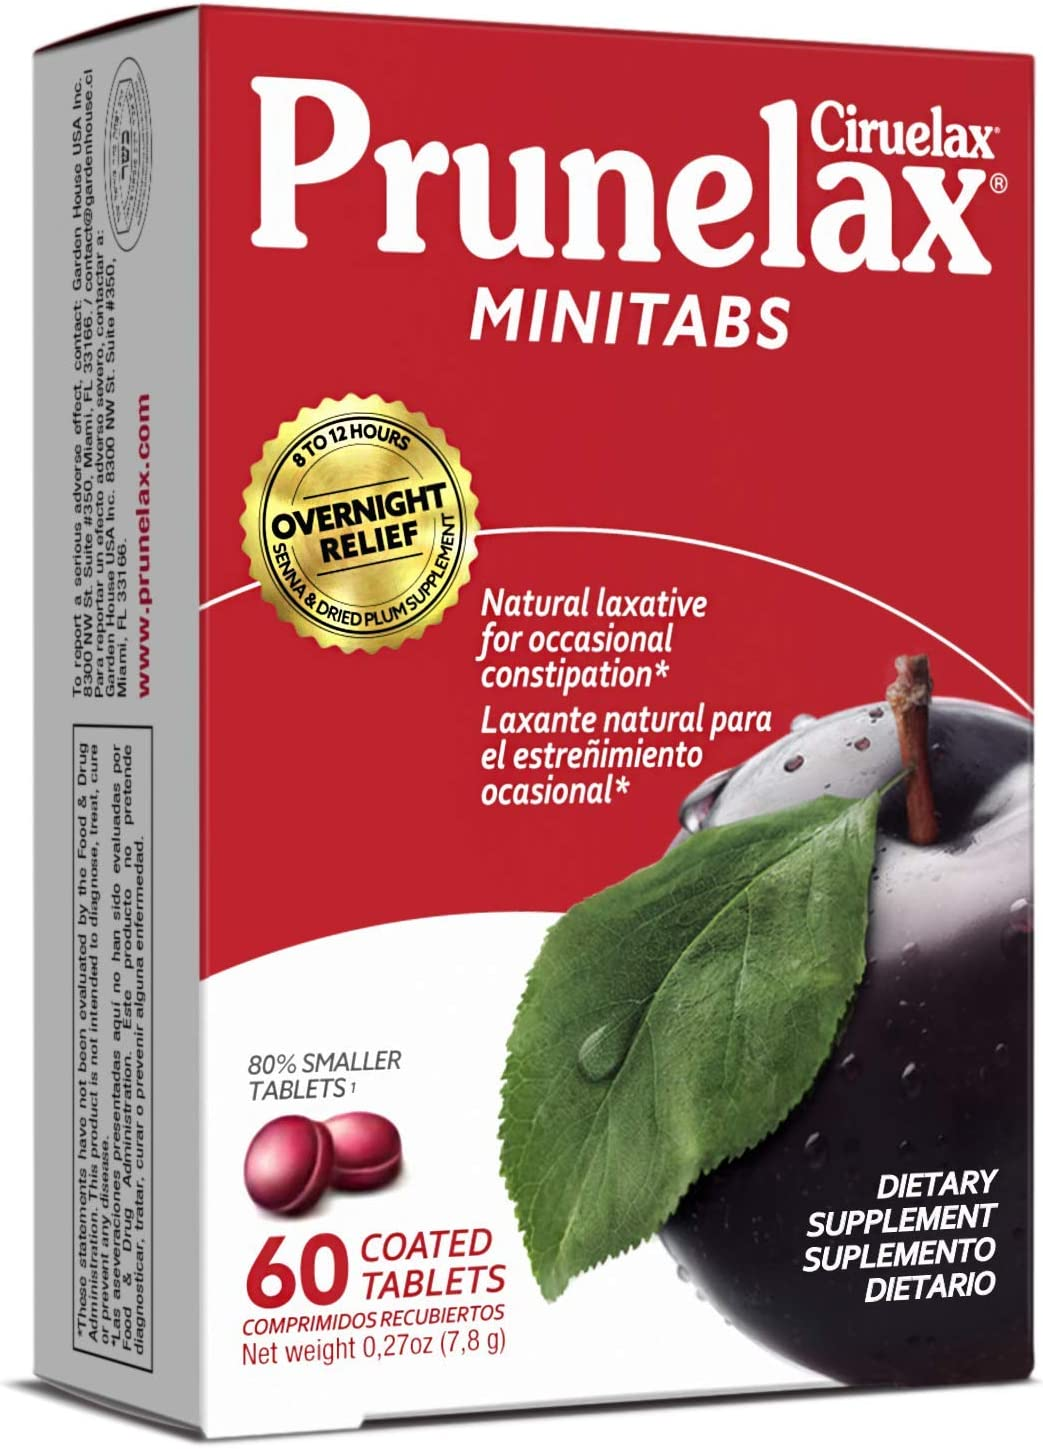 Prunelax Ciruelax Fashionable Natural Laxative Mini 60Count Tablets New product type Regular